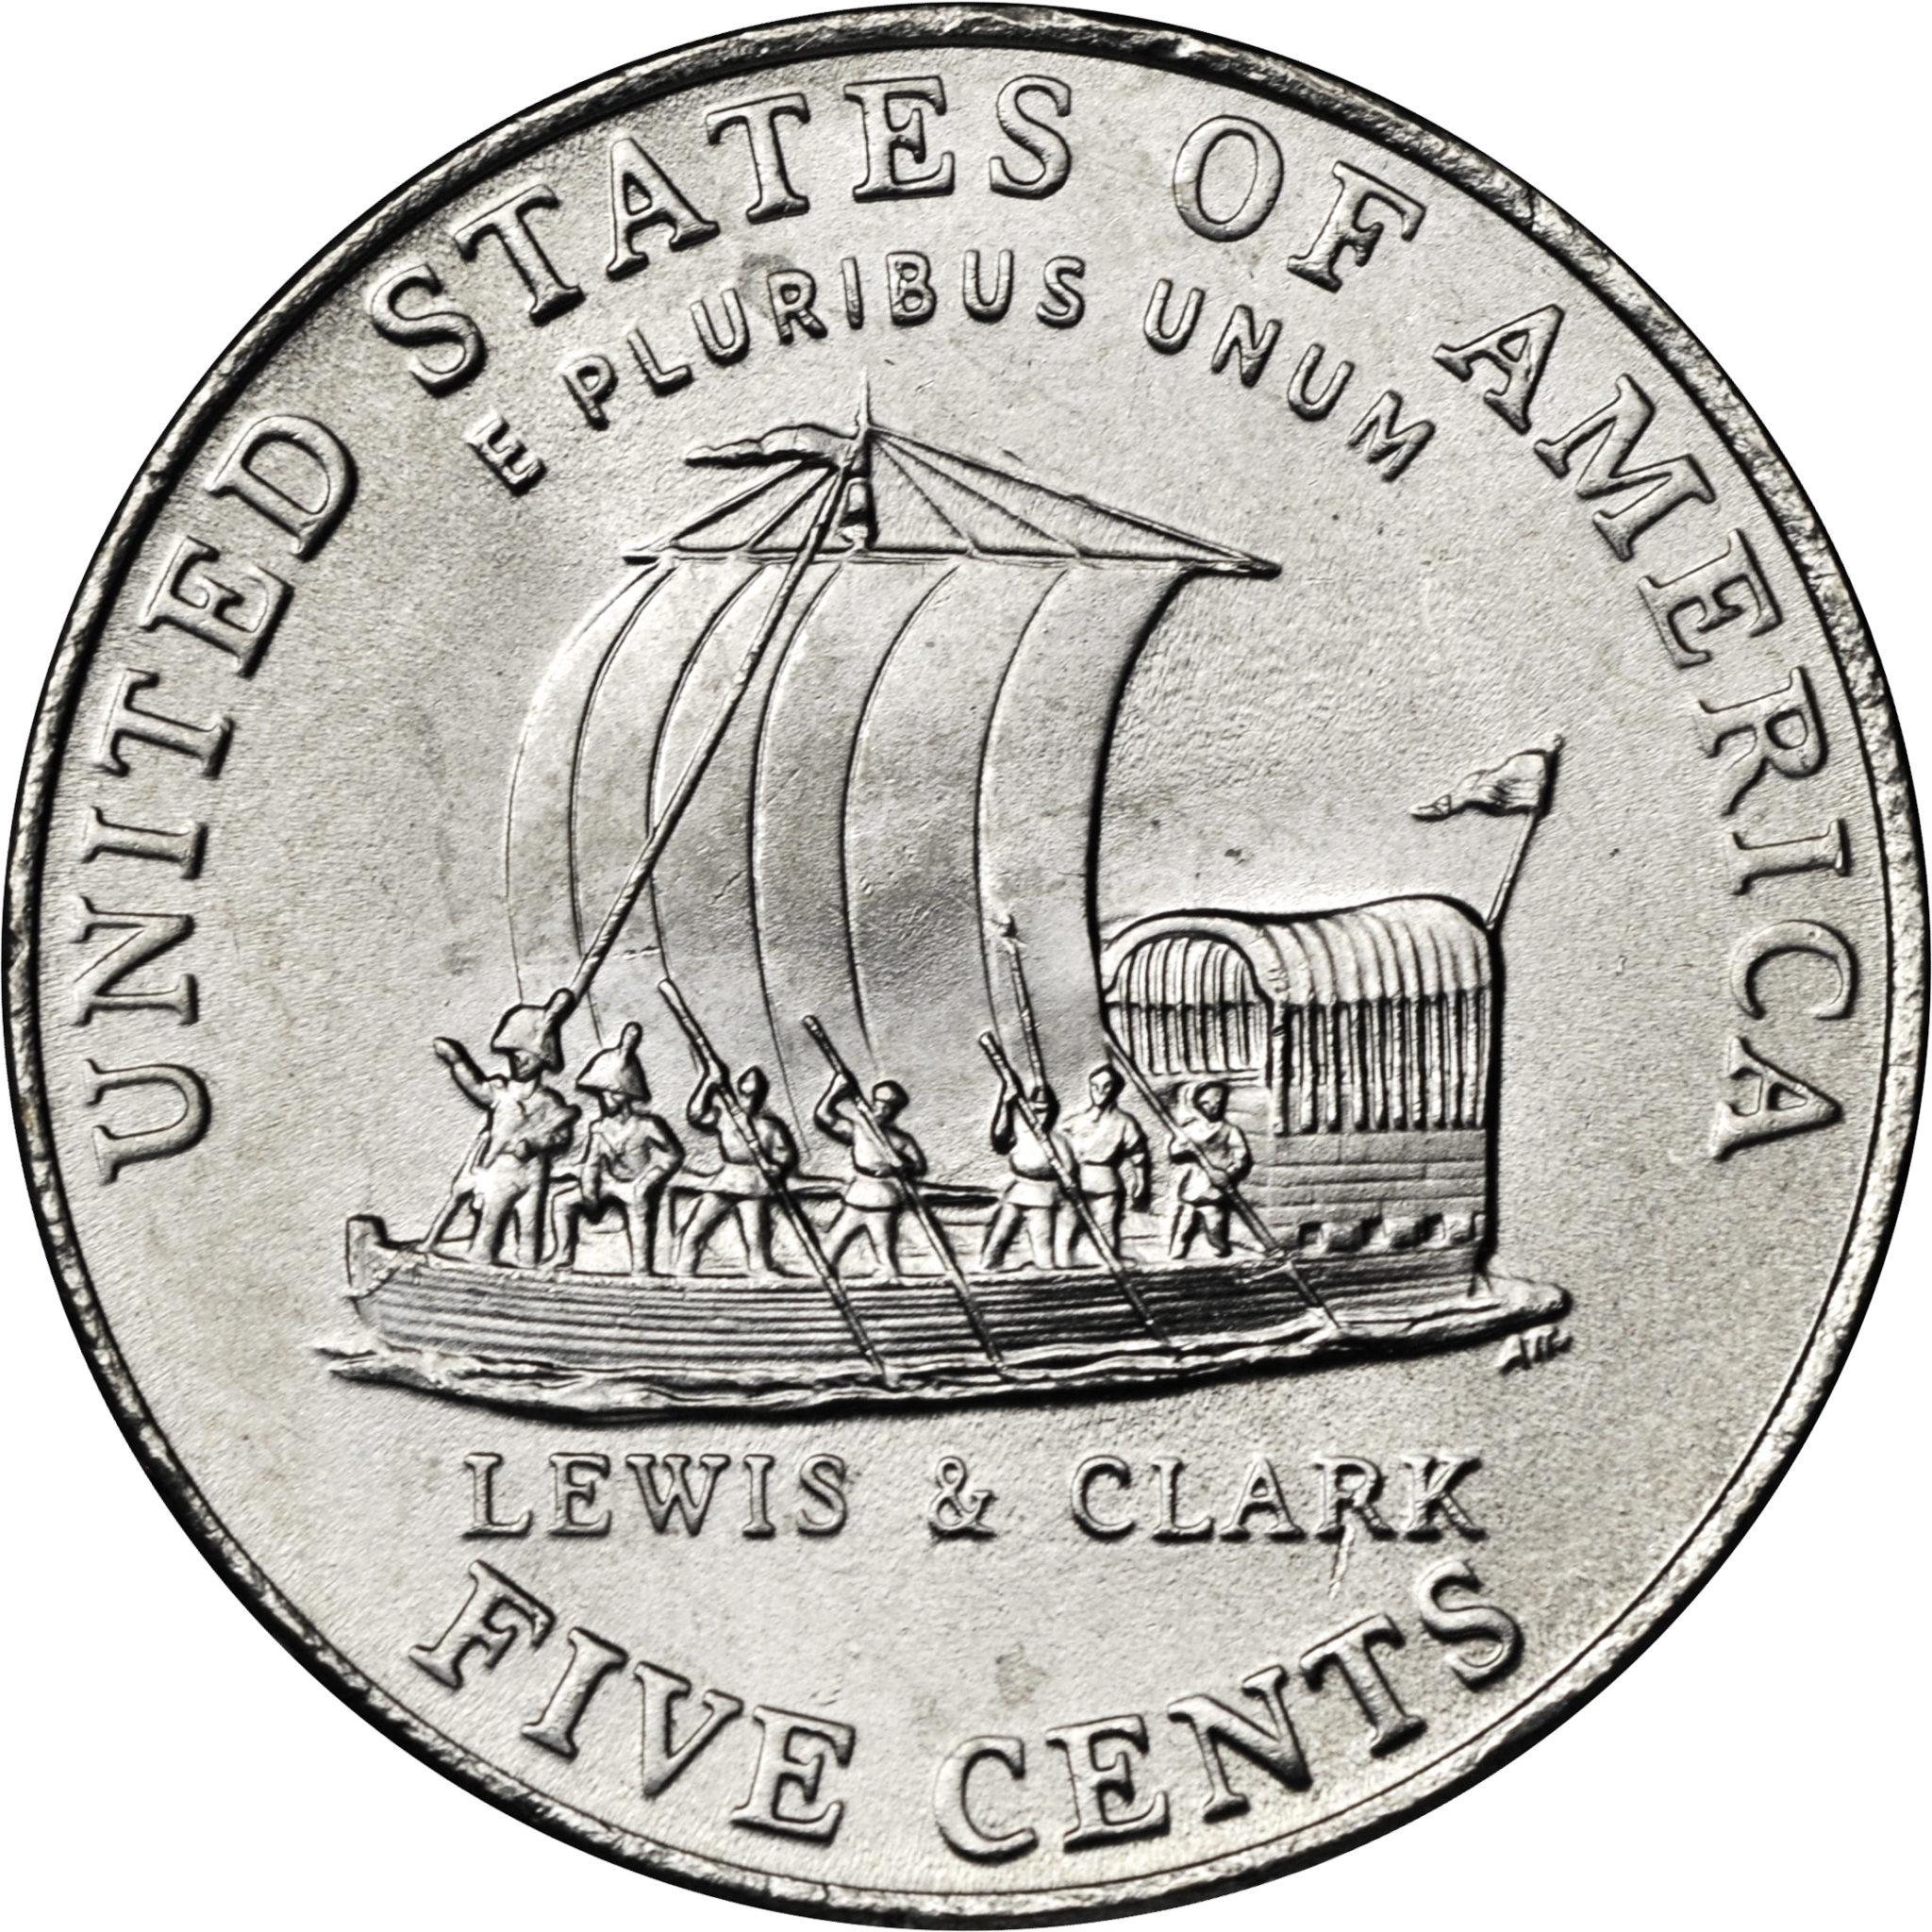 2004 Keel Boat Westward Journey Nickel | Modern Coin Buyer!